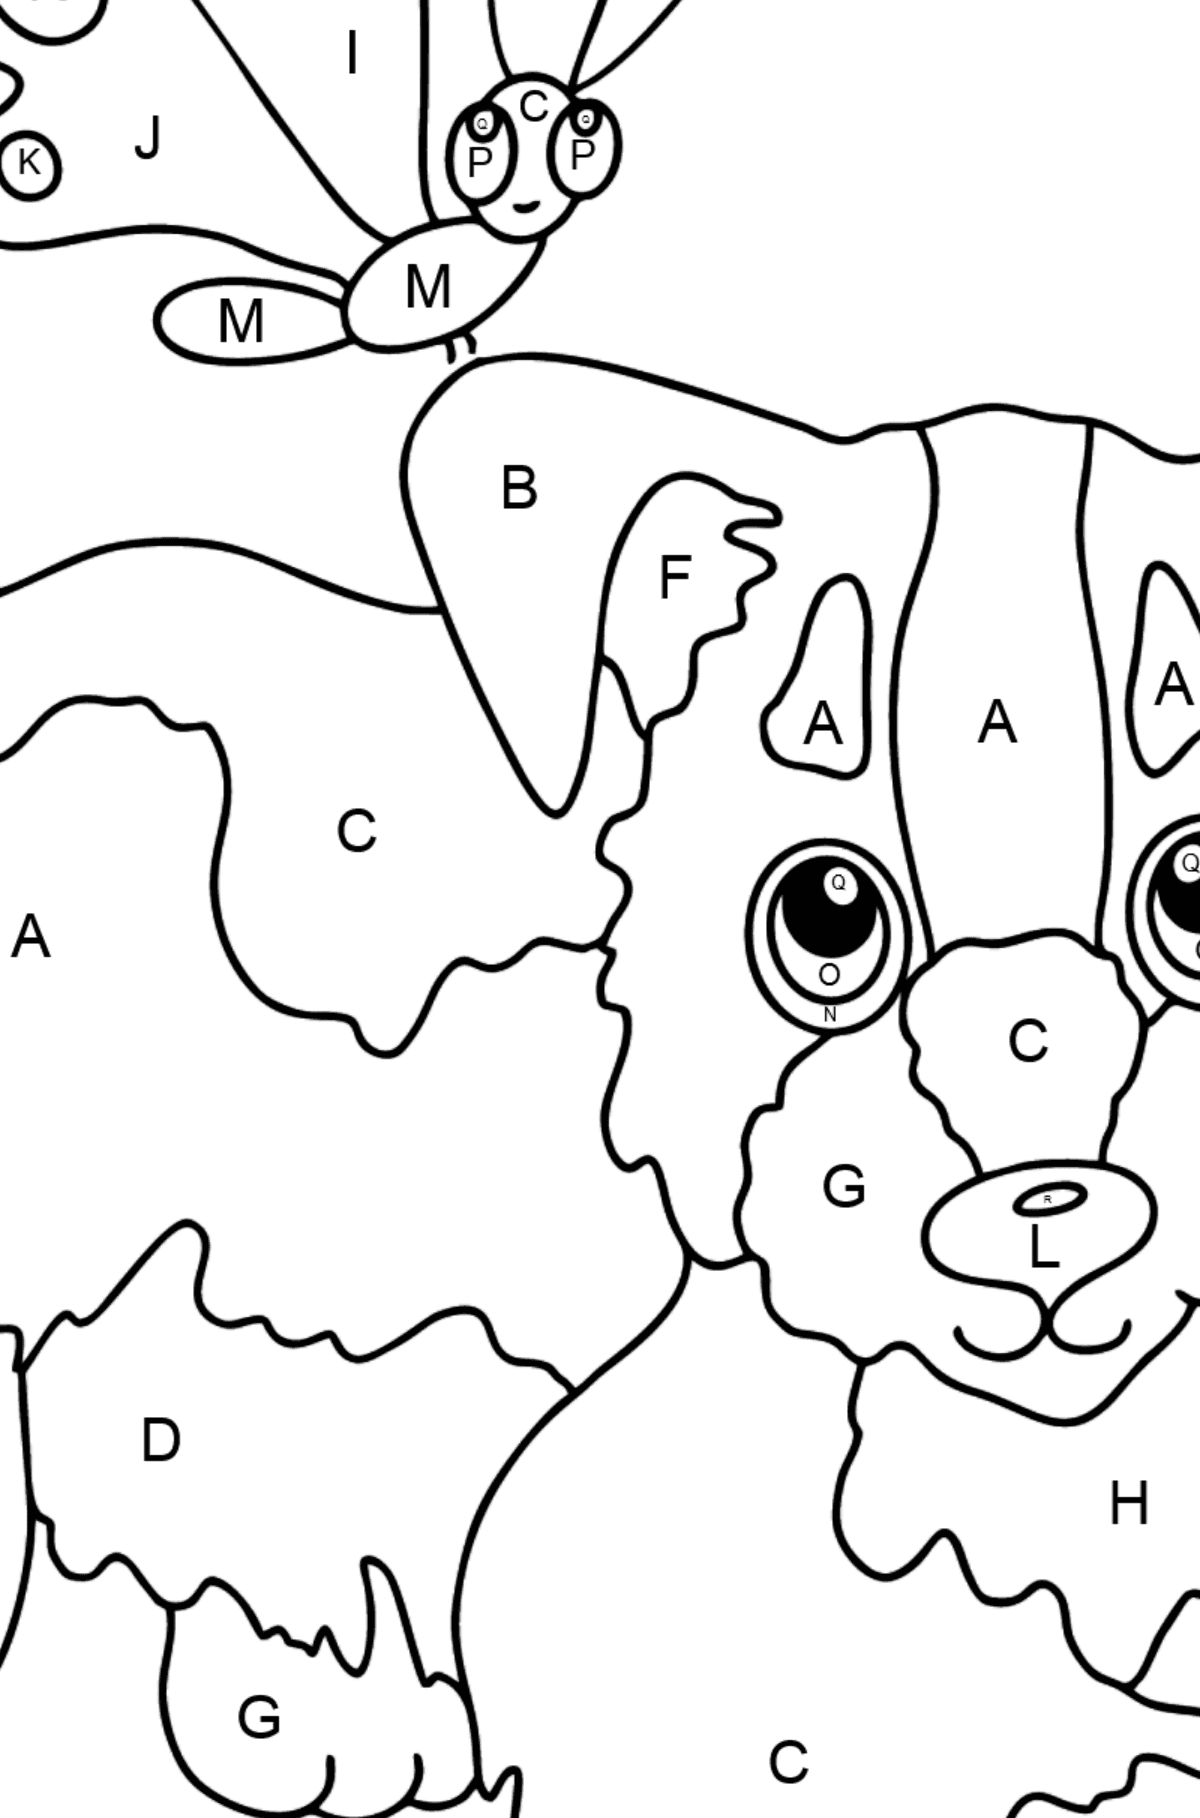 Coloring Page - A Dog is Playing with a Butterfly - Coloring by Letters for Kids